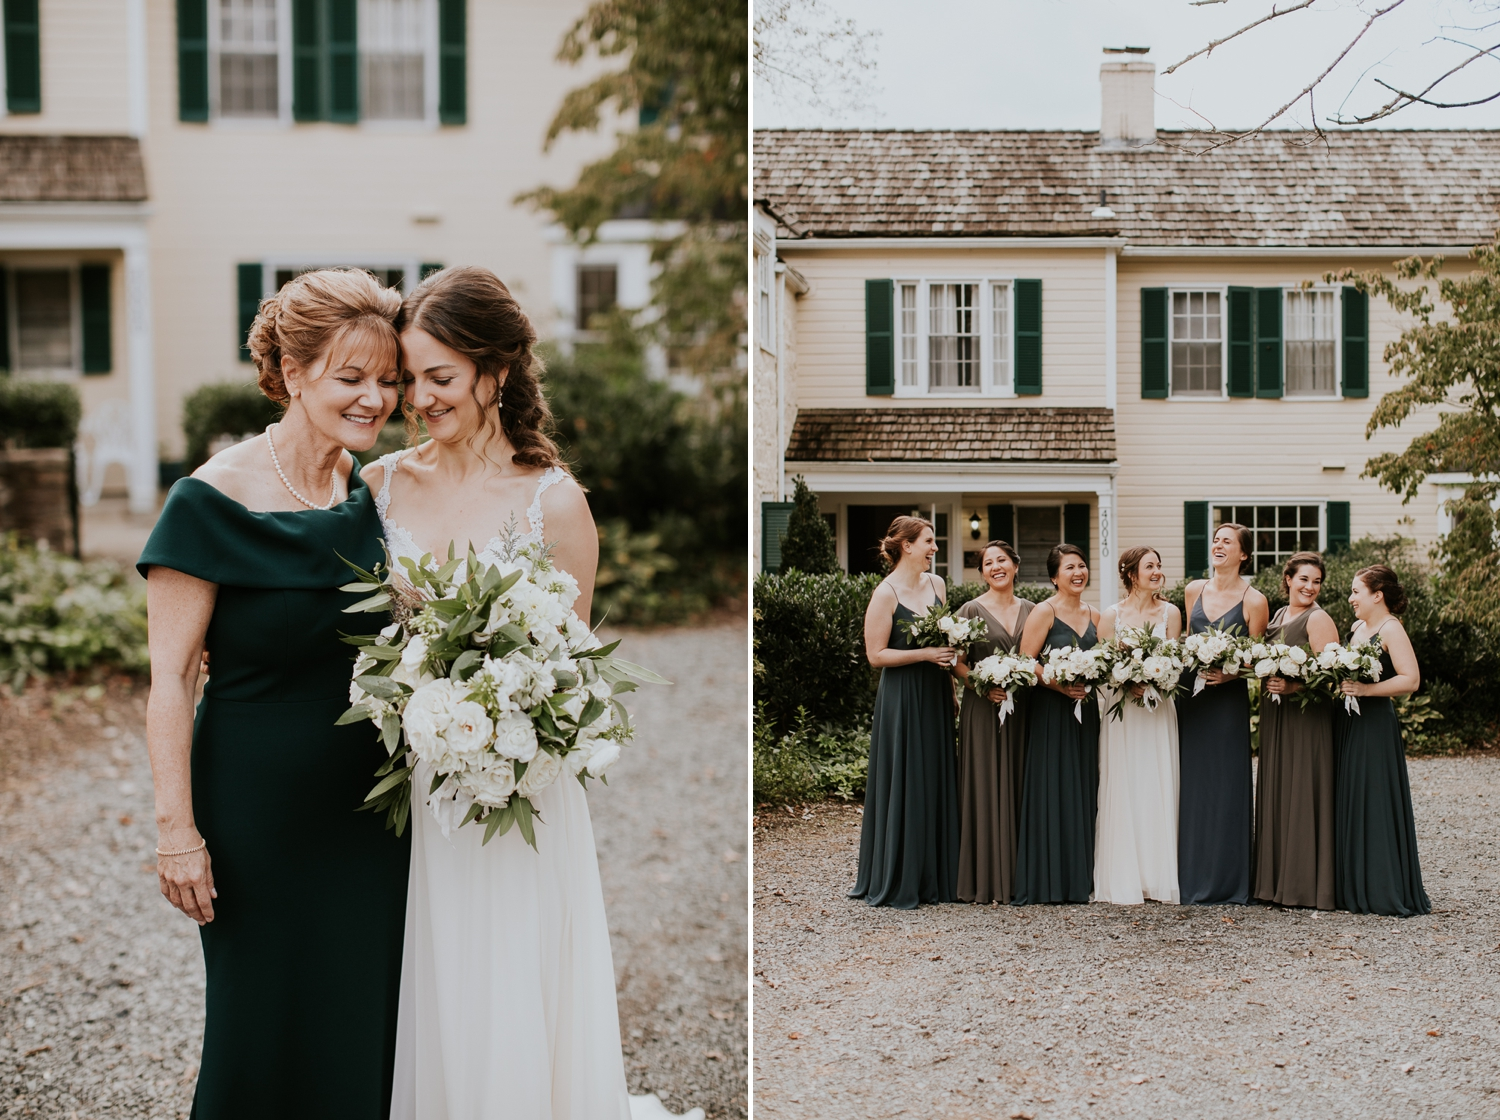 leesburg-virginia-oatlands-historic-house-wedding-photographer-planner-vendors 22.jpg